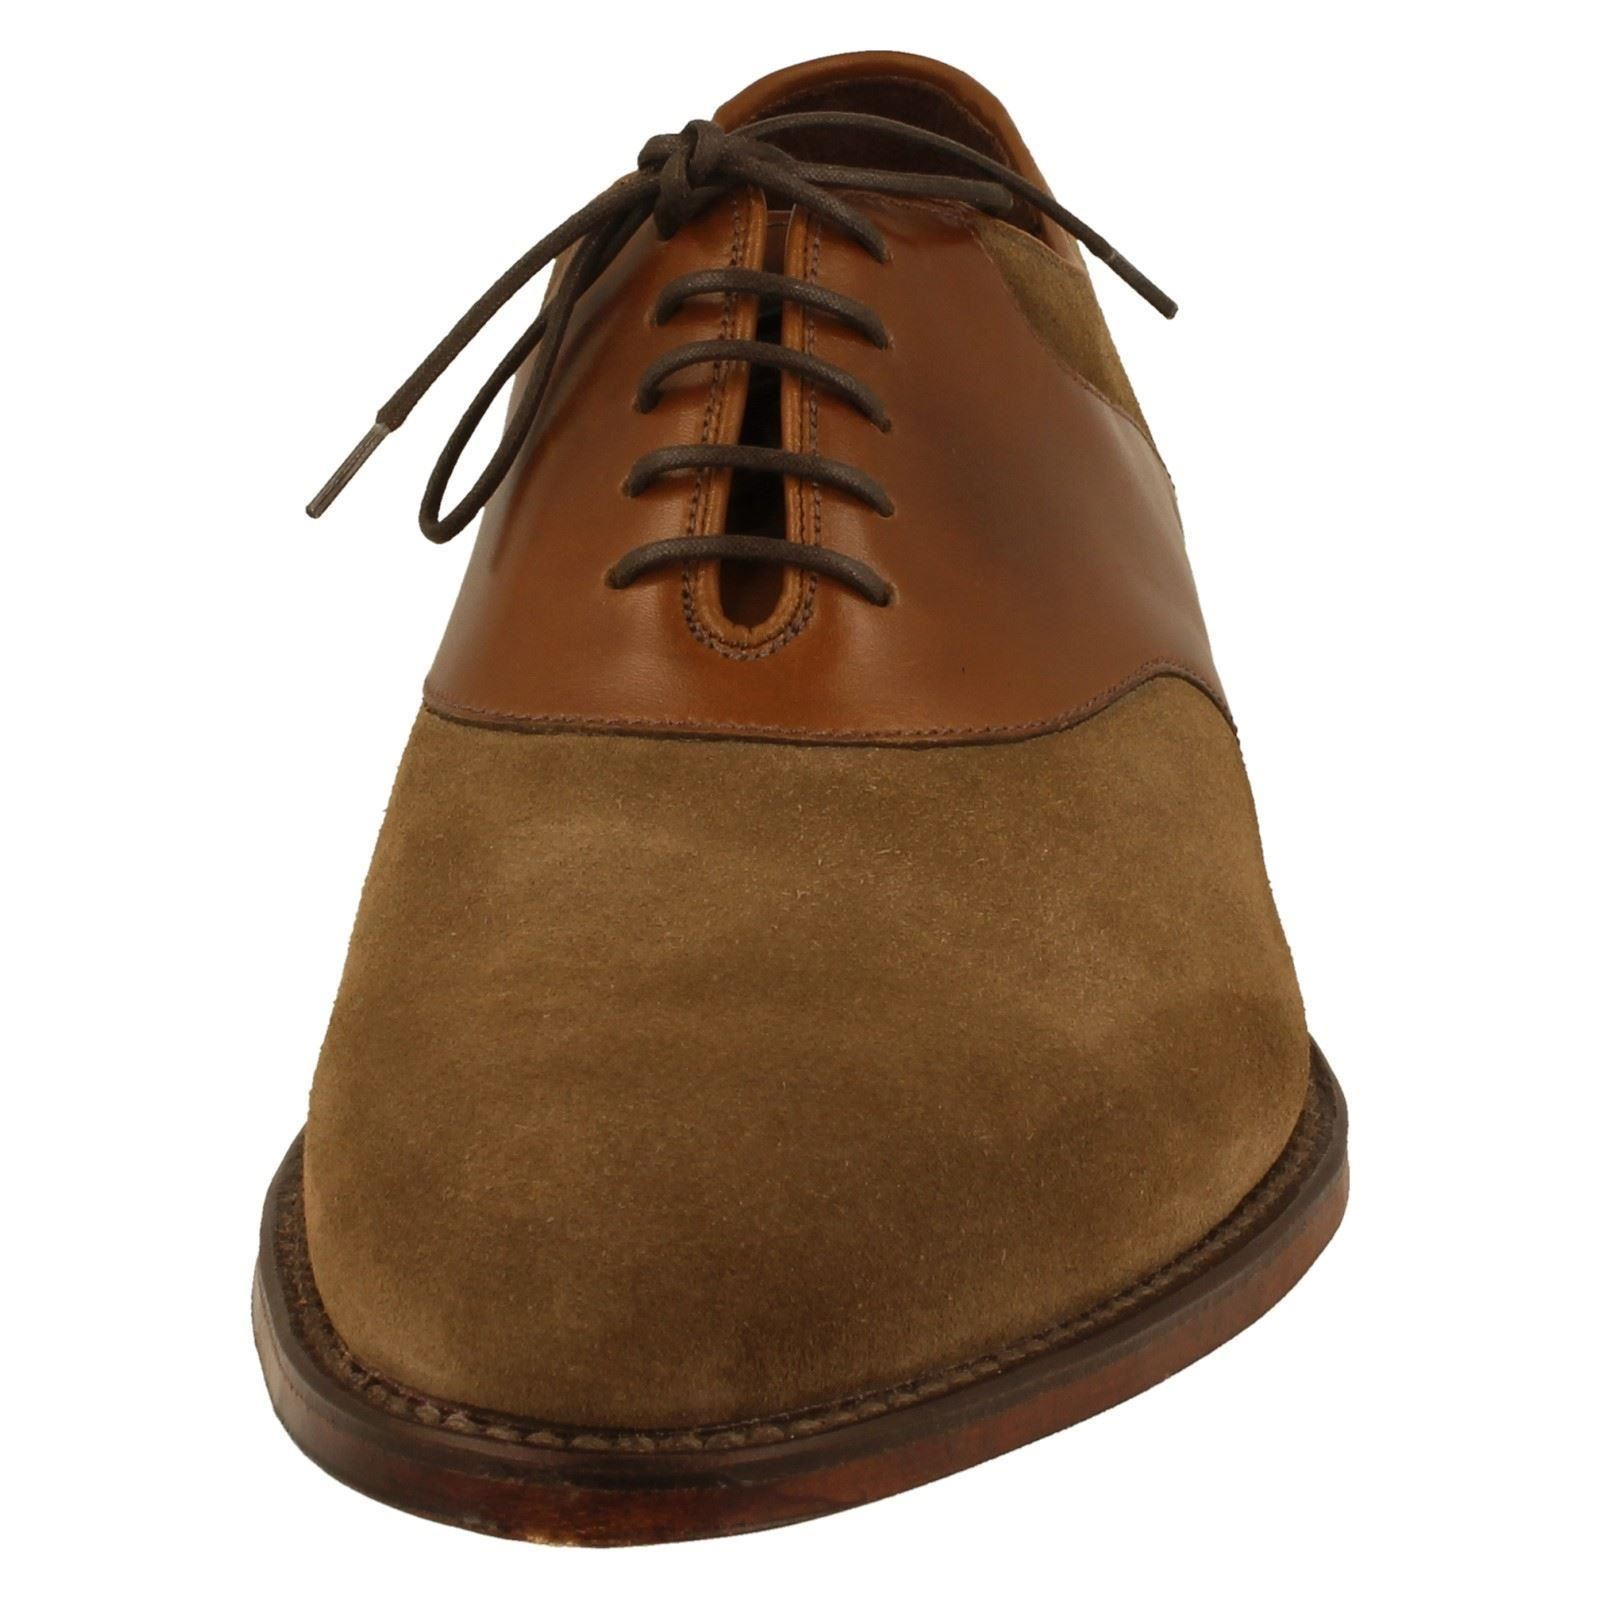 Da Lace-Up Uomo Formale Lace-Up Da Scarpe Loake lo stile asquith-w bded14